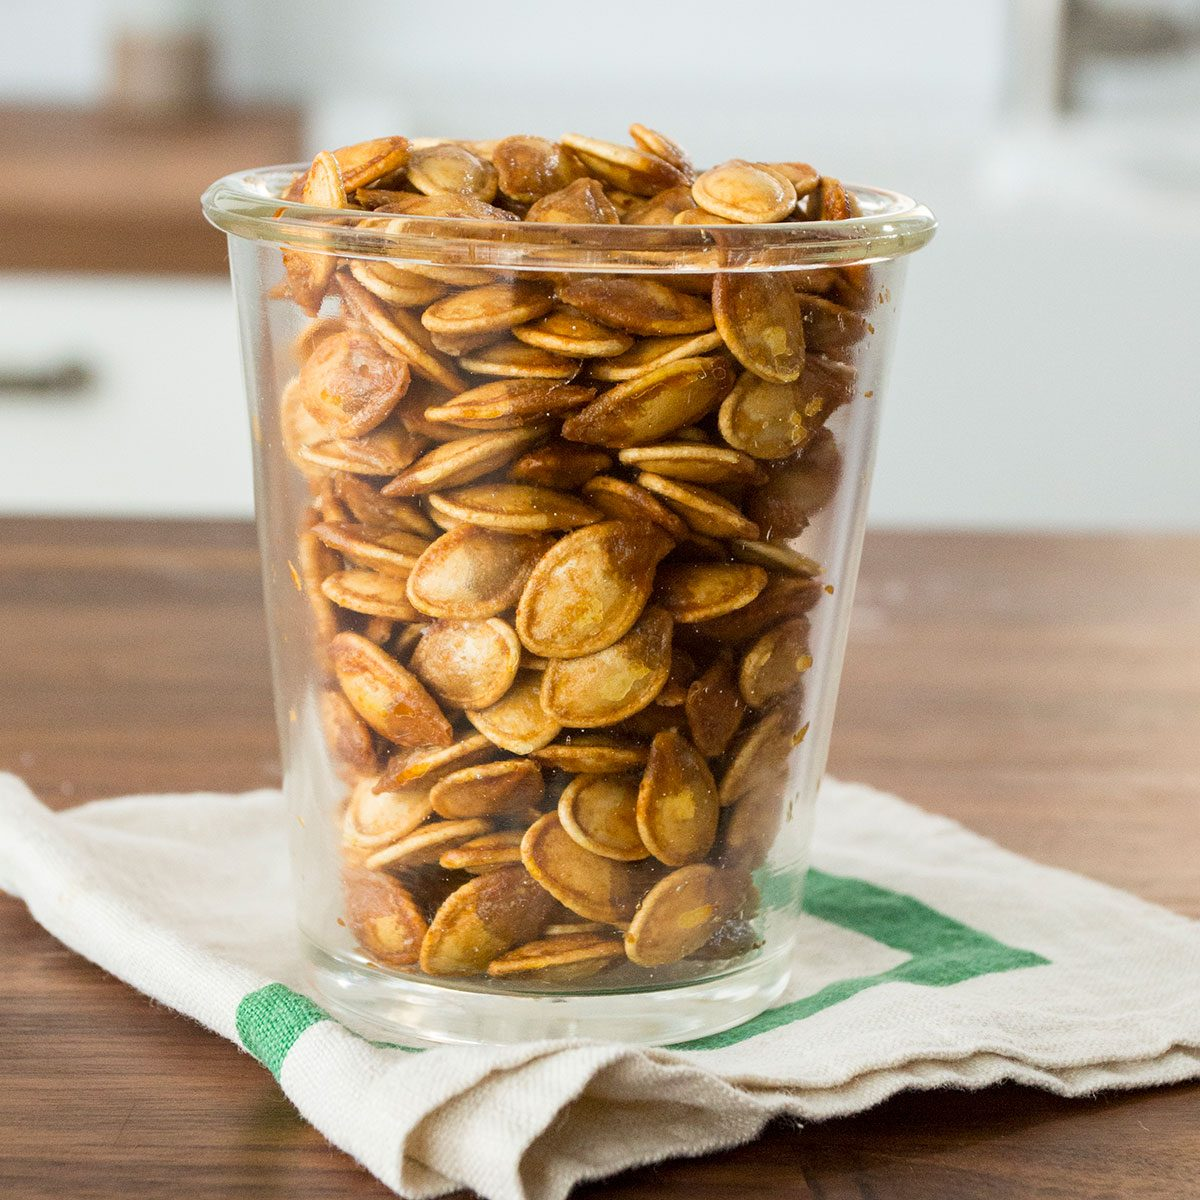 Cup of roasted pumpkin seeds on top of a green and white towel